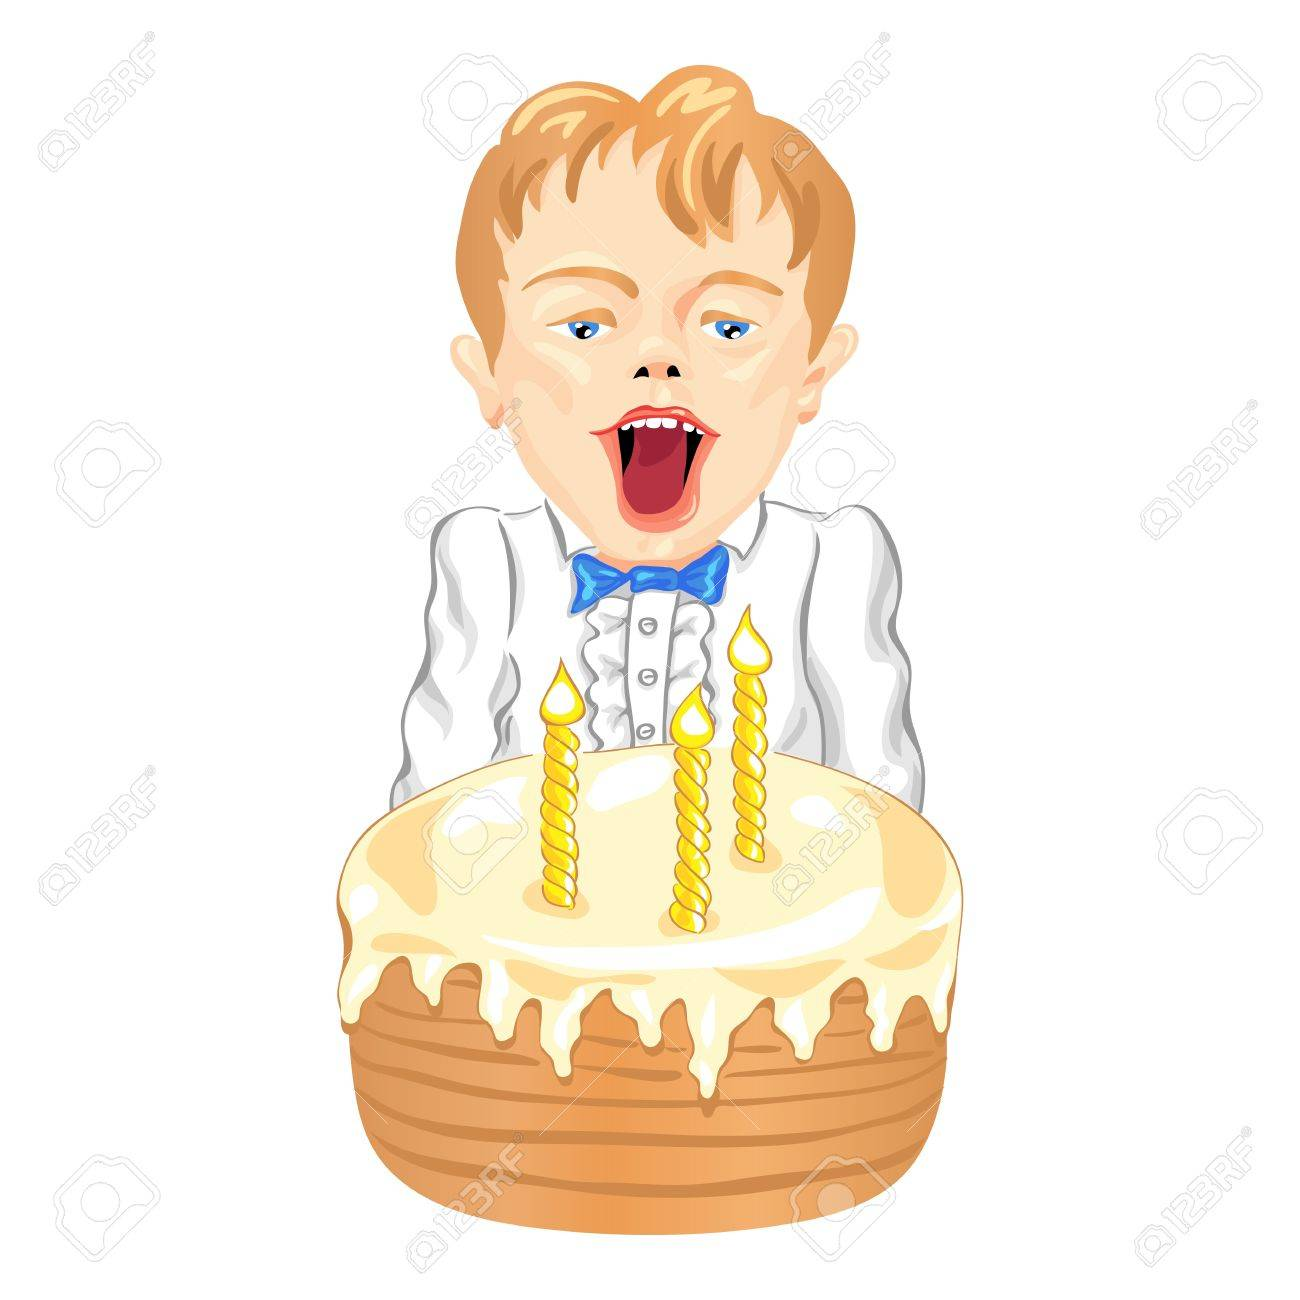 Little Boy Blowing The Candles On A Birthday Cake Royalty Free